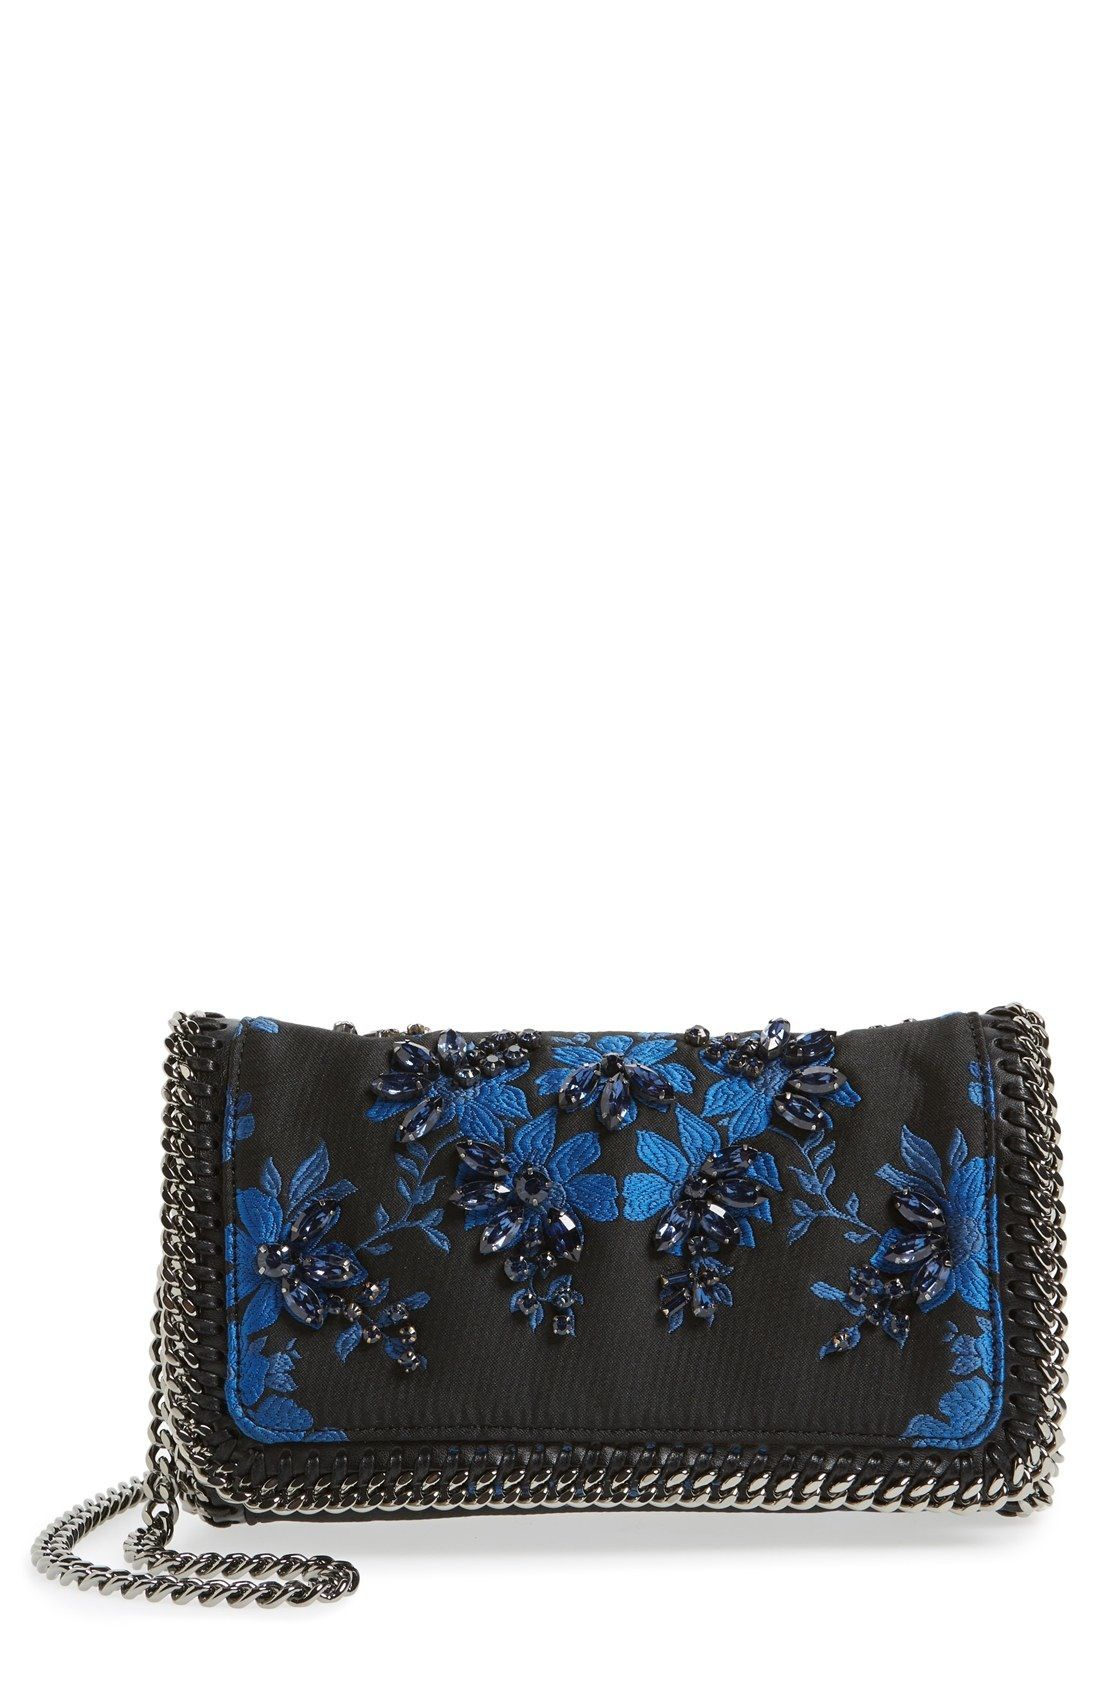 Stella McCartney 'Mini Falabella' Embroidered Crossbody Bag available at #Nordstrom